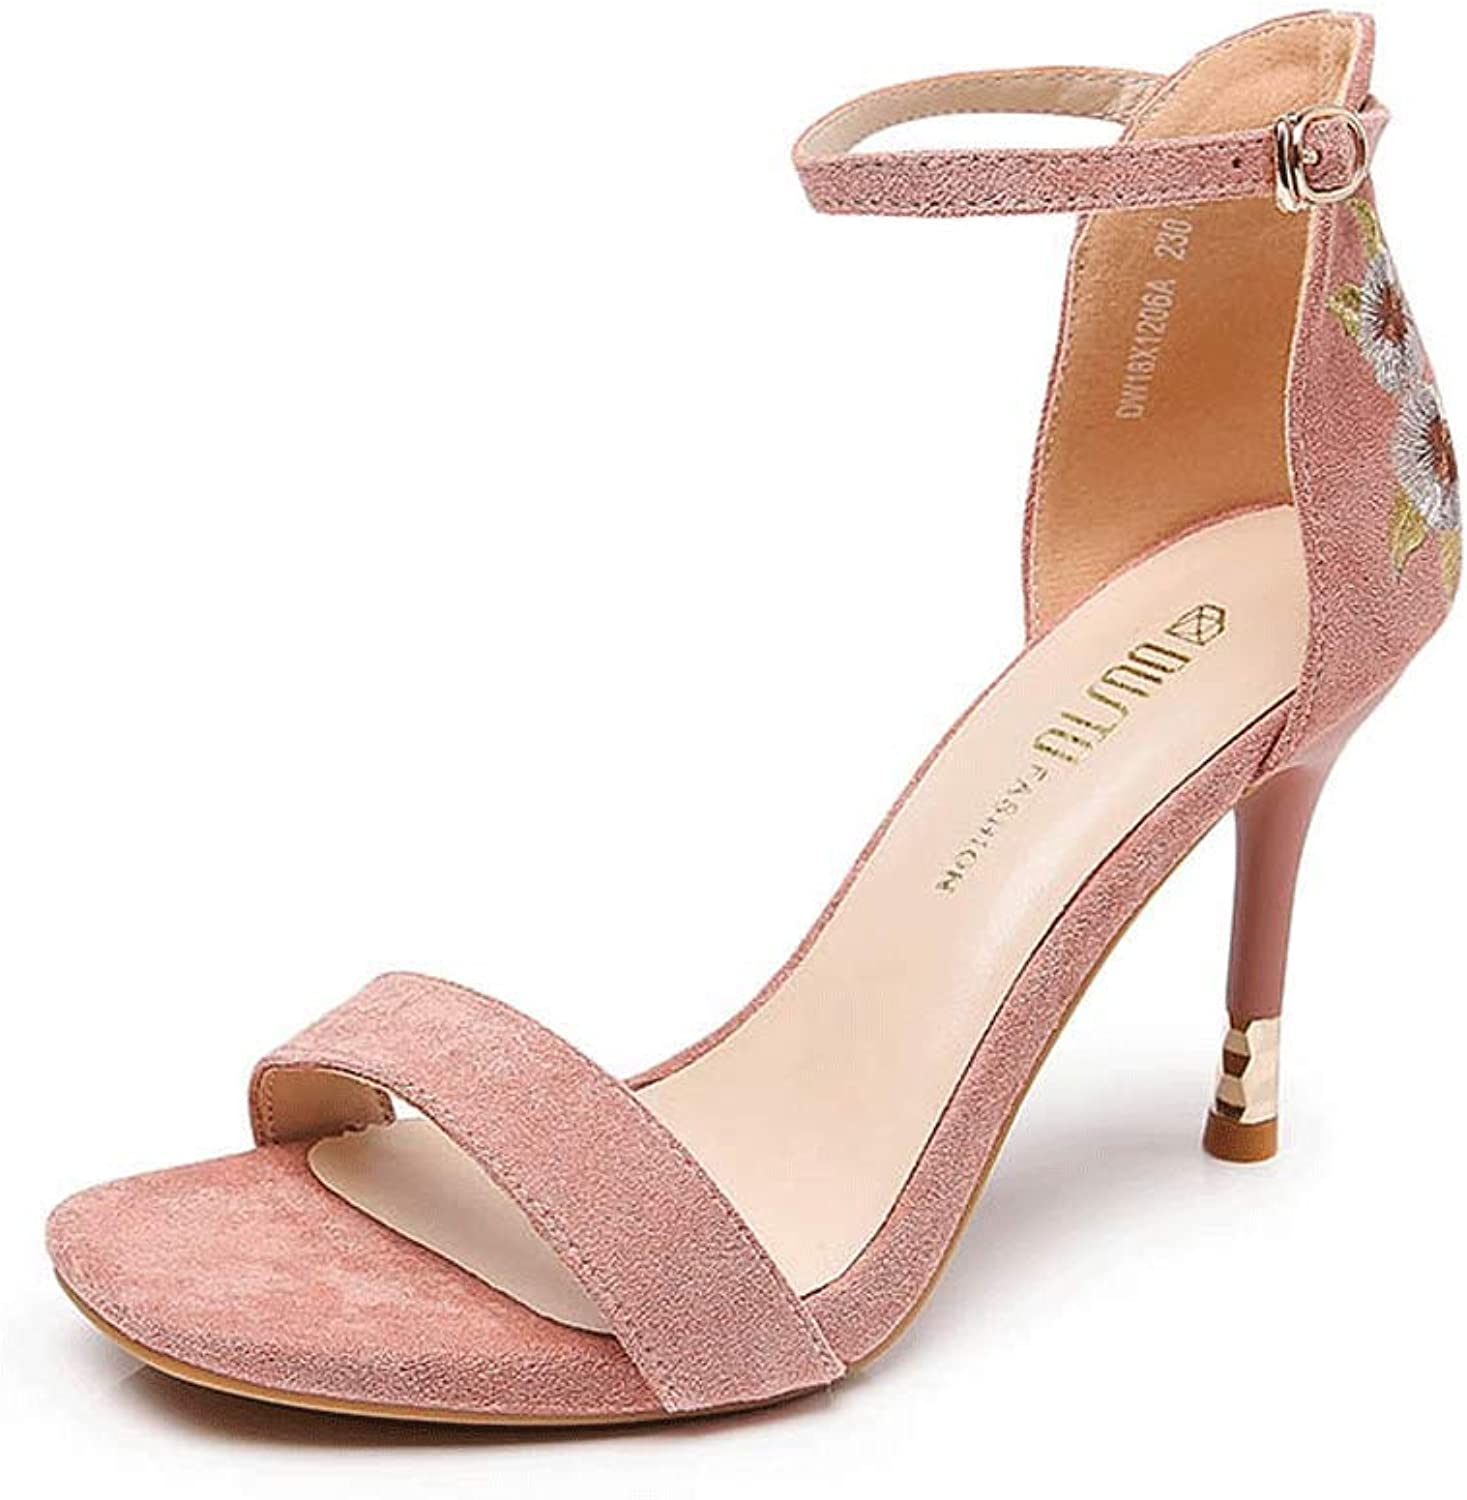 Embroidered Sandals Suede Open Toe Ladies Flower High Heels (color   Pink, Size   EU36 UK3.5 CN35)